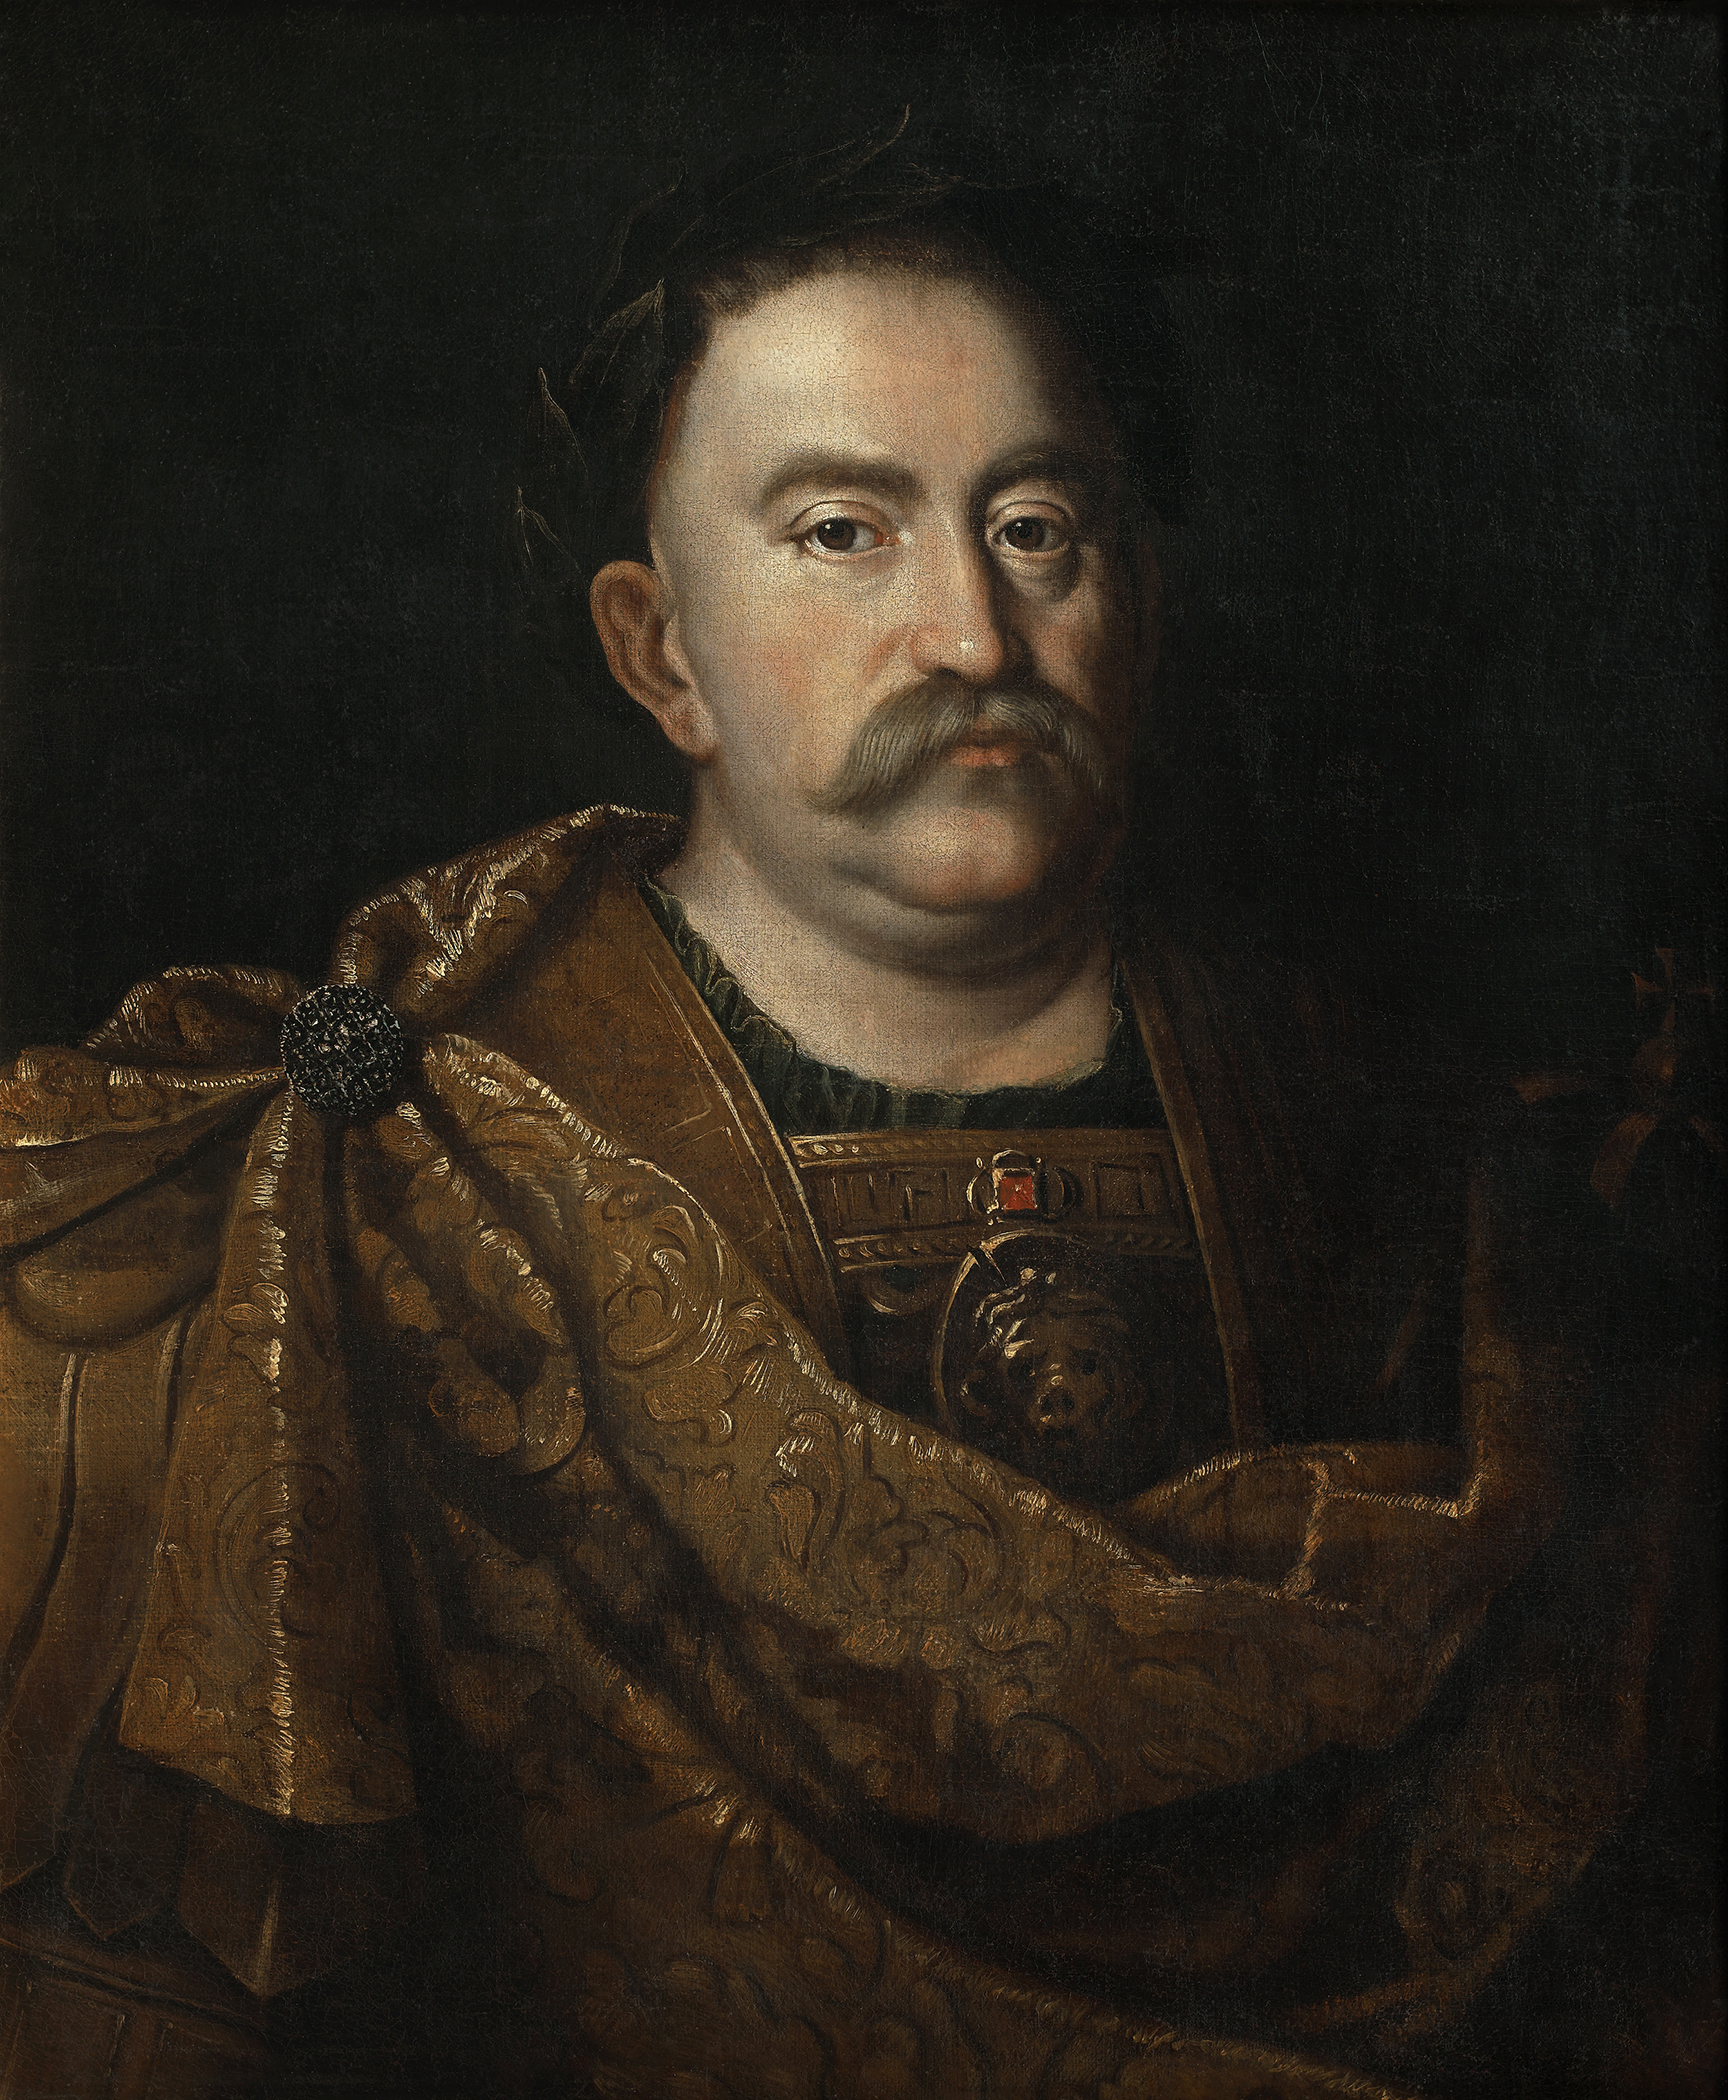 Portrait of John III Sobieski (1629-1696), King of Poland and Grand Duke of Lithuania (1674-1696), Great Crown Hetman of Poland (Hetman wielki koronny) from 1668-1676), 1683 | Portraits of Kings